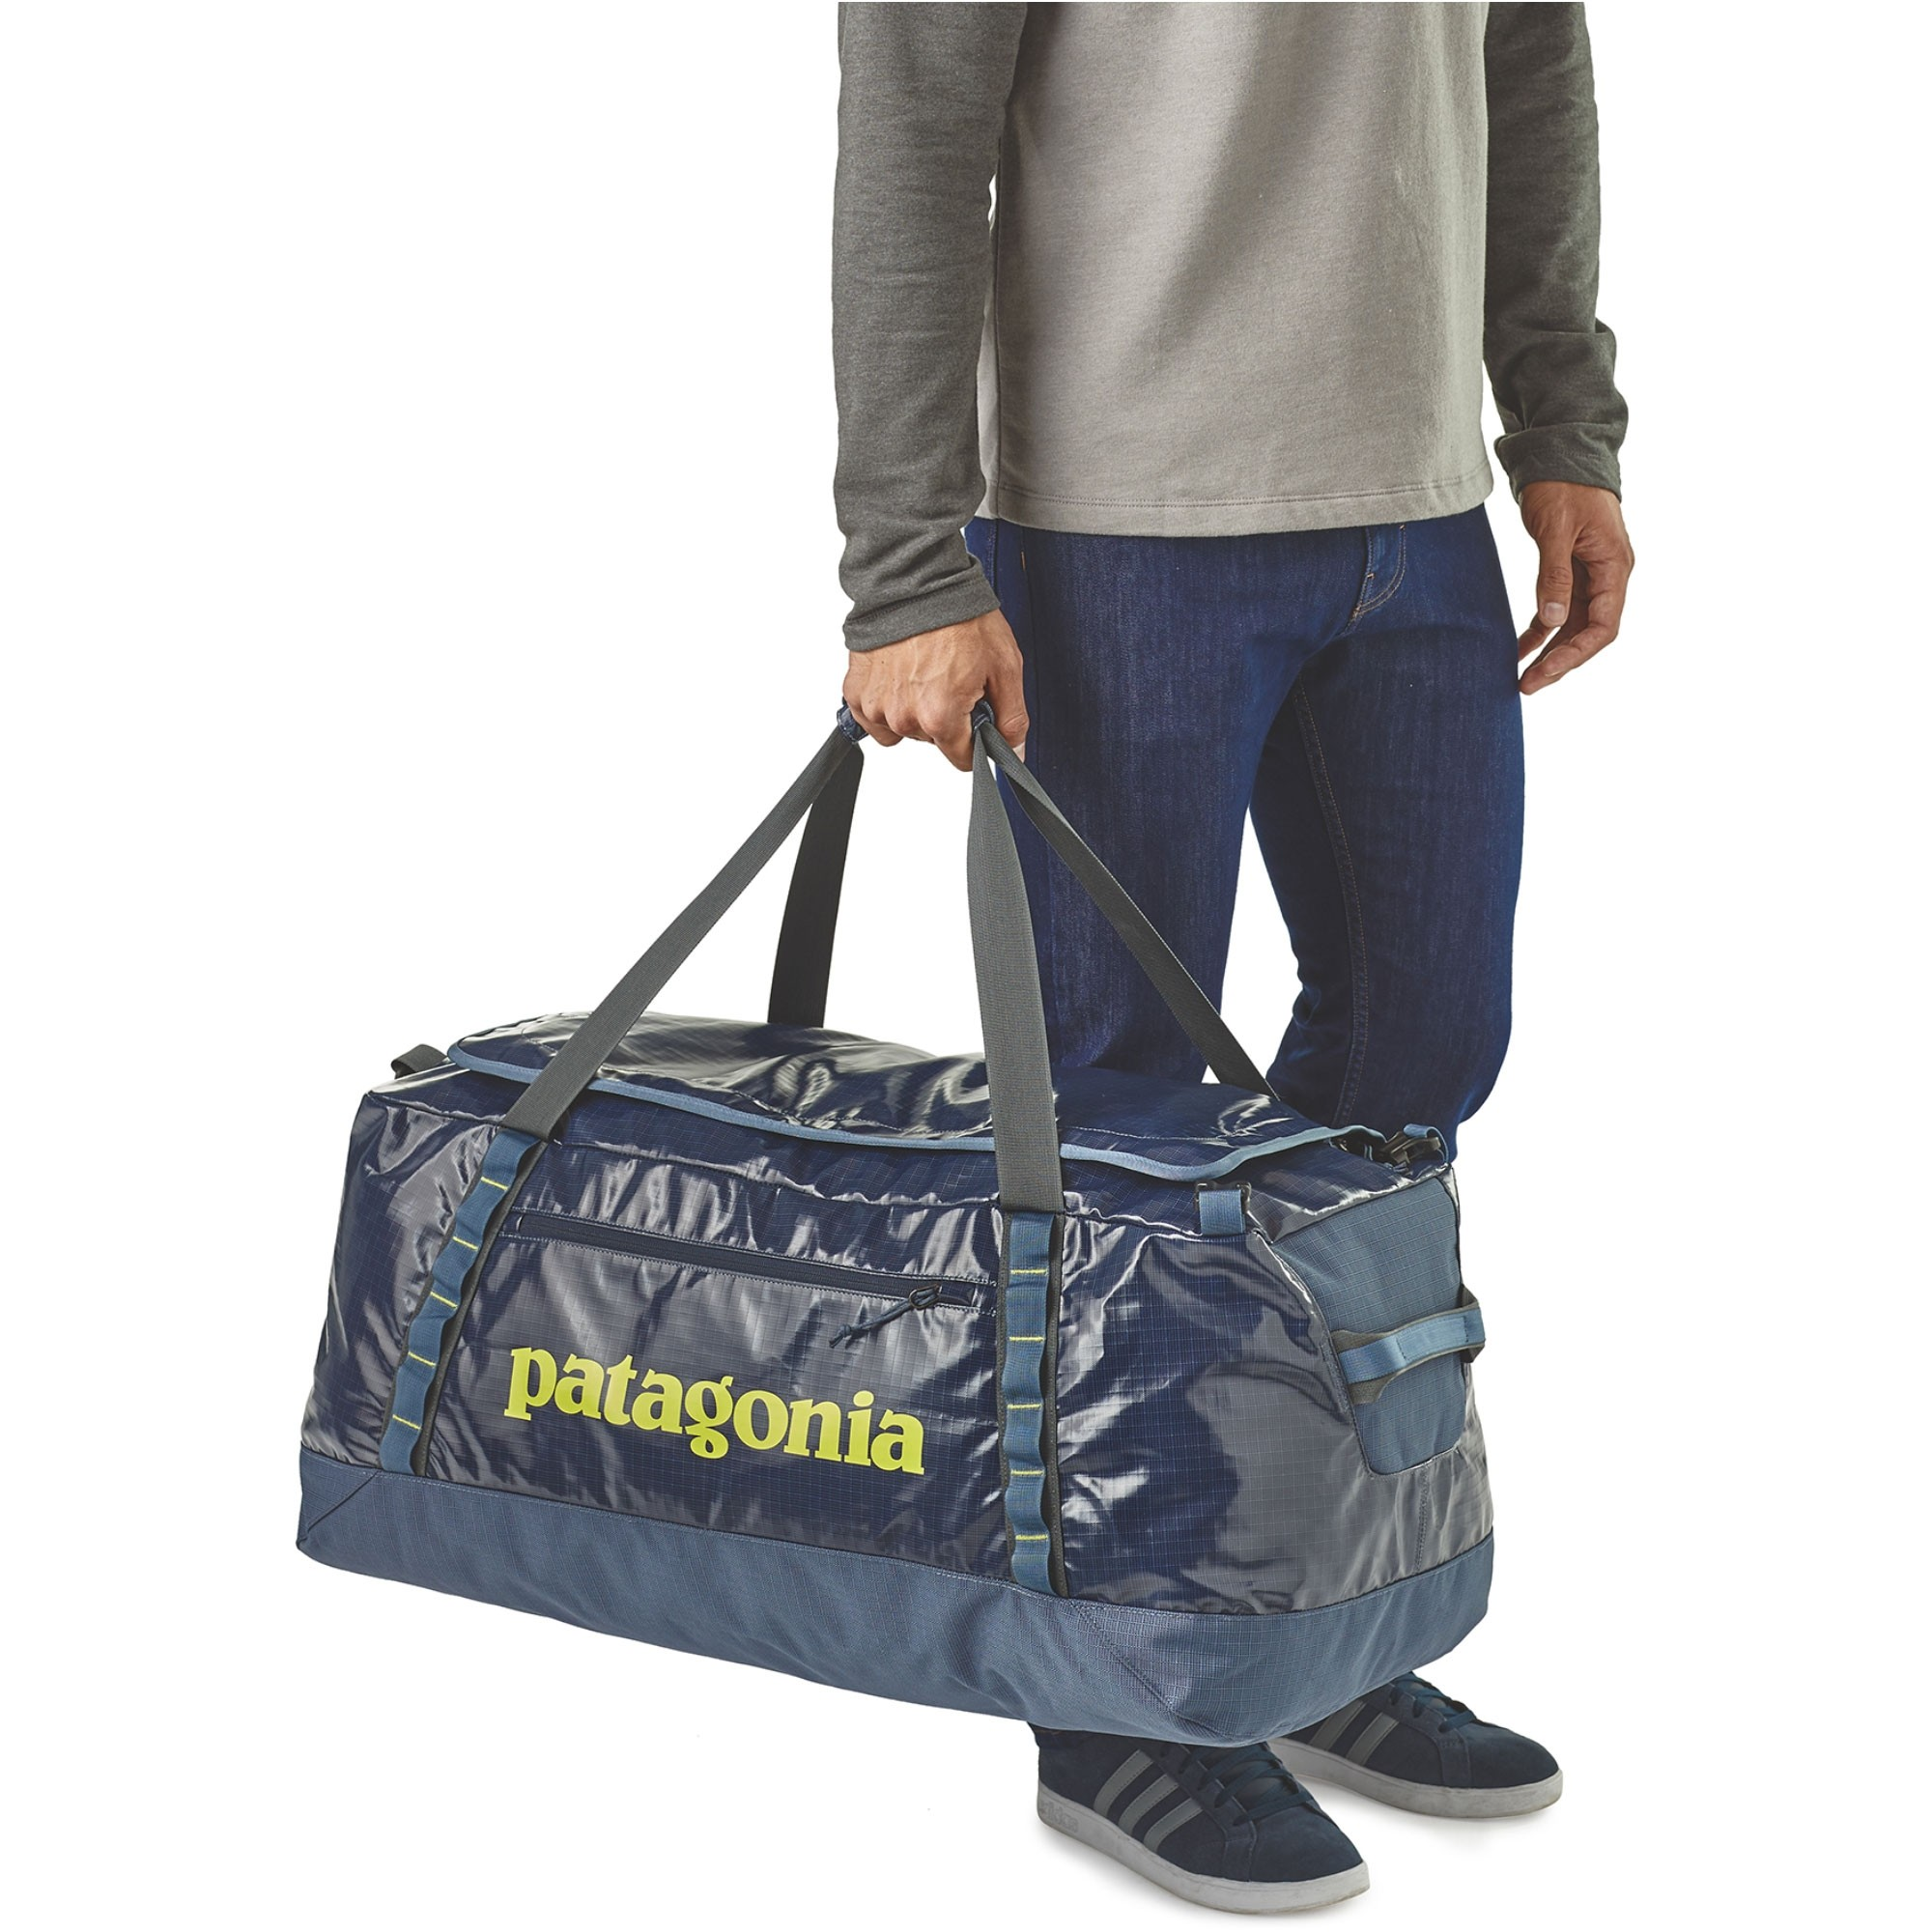 Patagonia Black Hole Duffel 90L - Dolomite Blue - carry